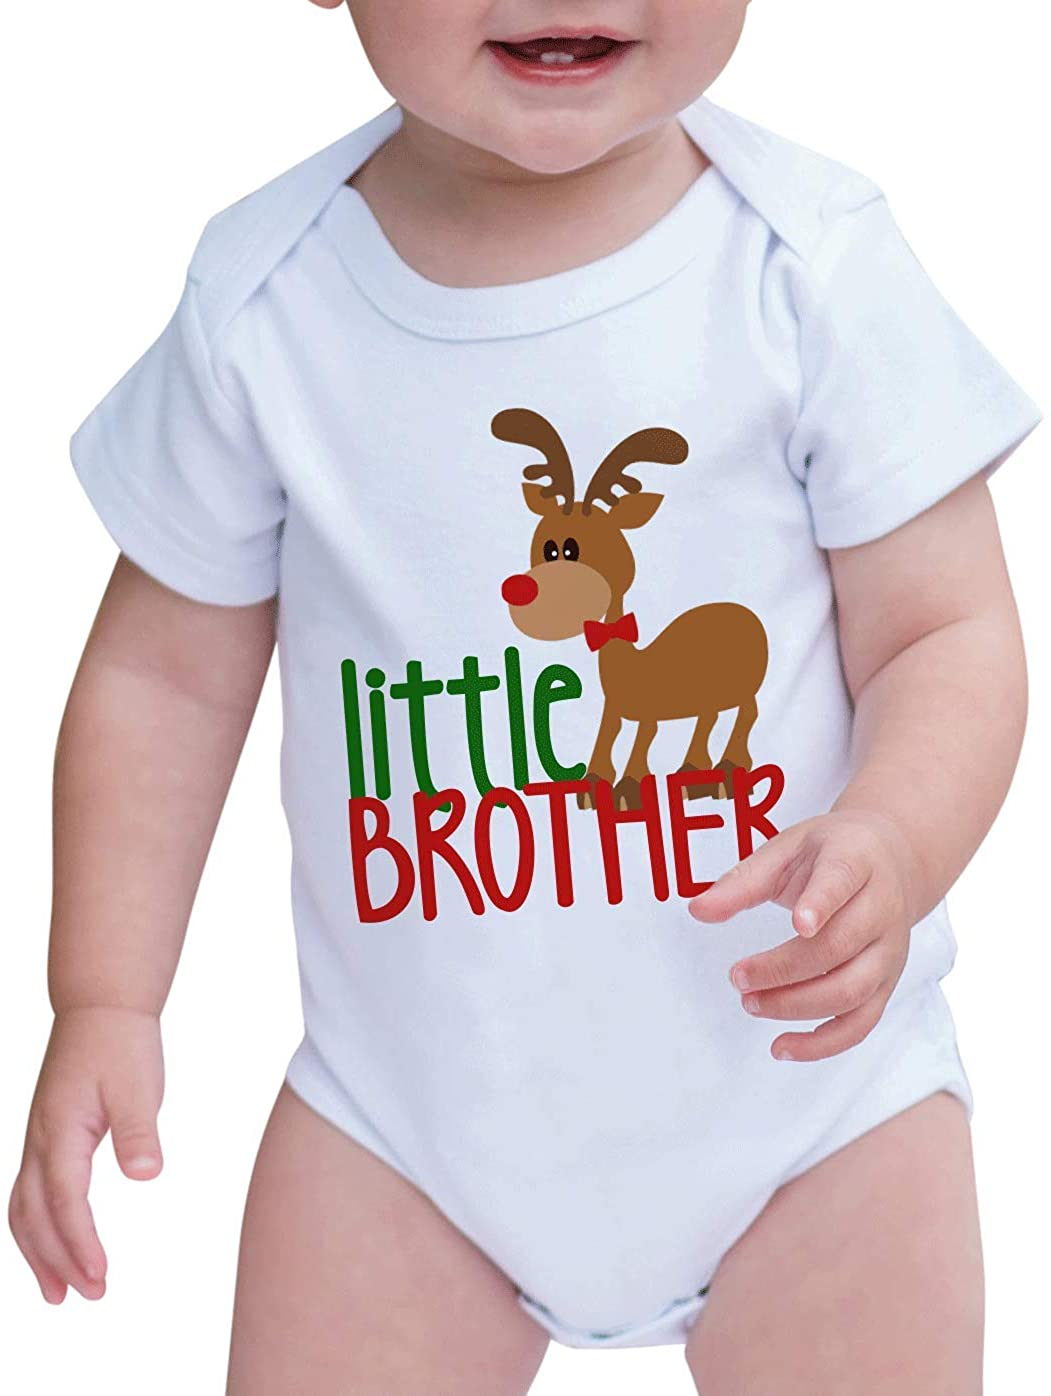 7 ate 9 Apparel Baby's Little Brother Christmas Onepiece